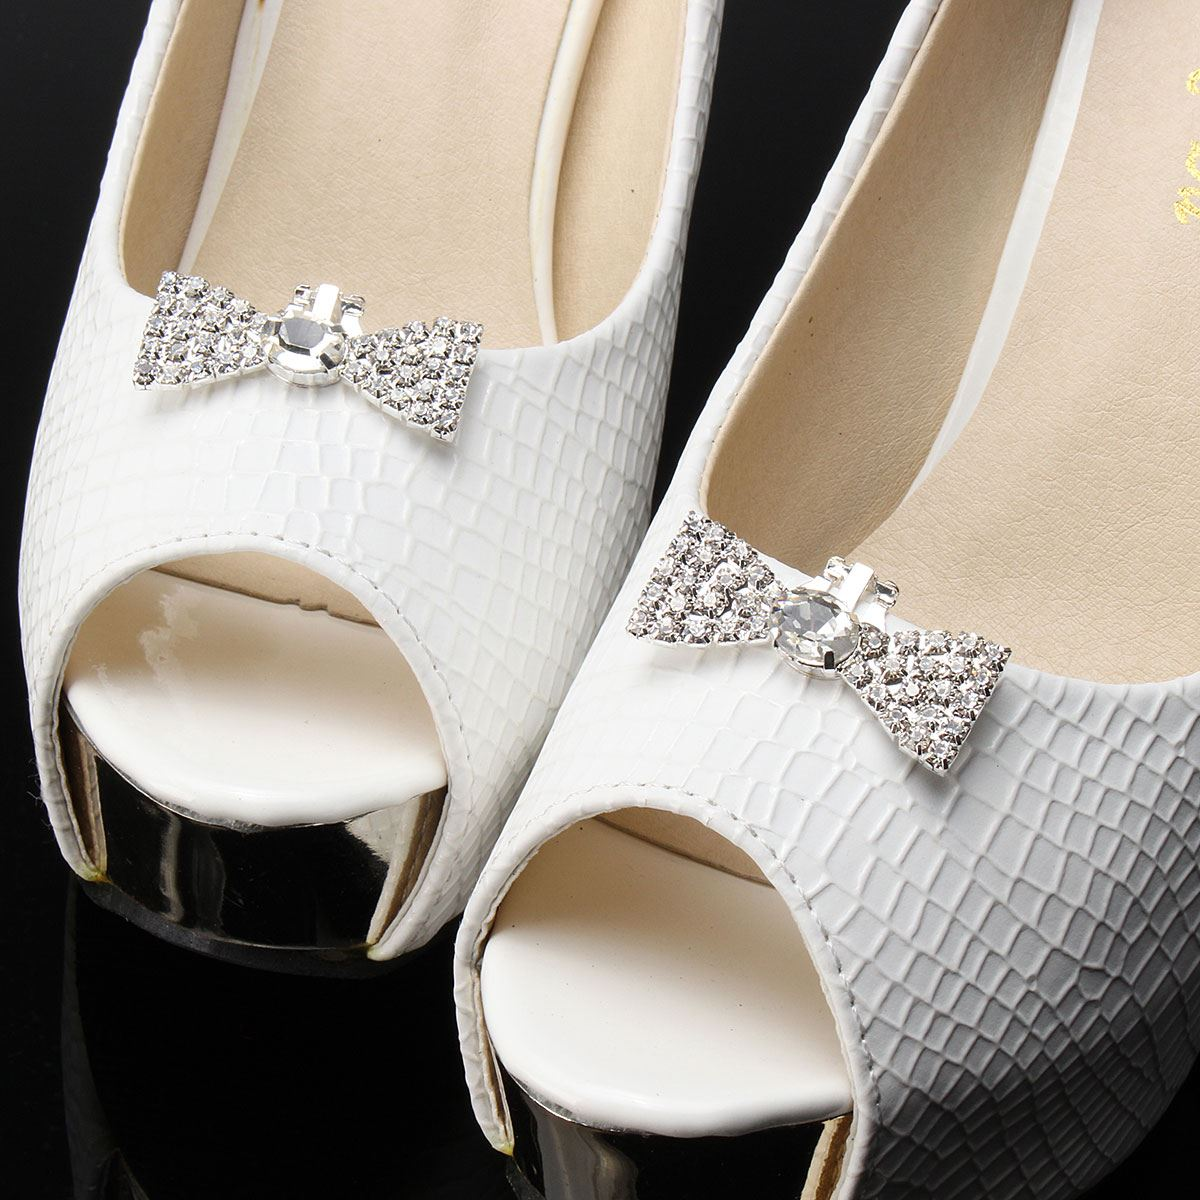 1 Pai Rhinestone Shoe Clips Crystal Shoe Jwerly Decor Accessories Bridal high-heel Wedding Shoes Decoration Buckle Clip Charms